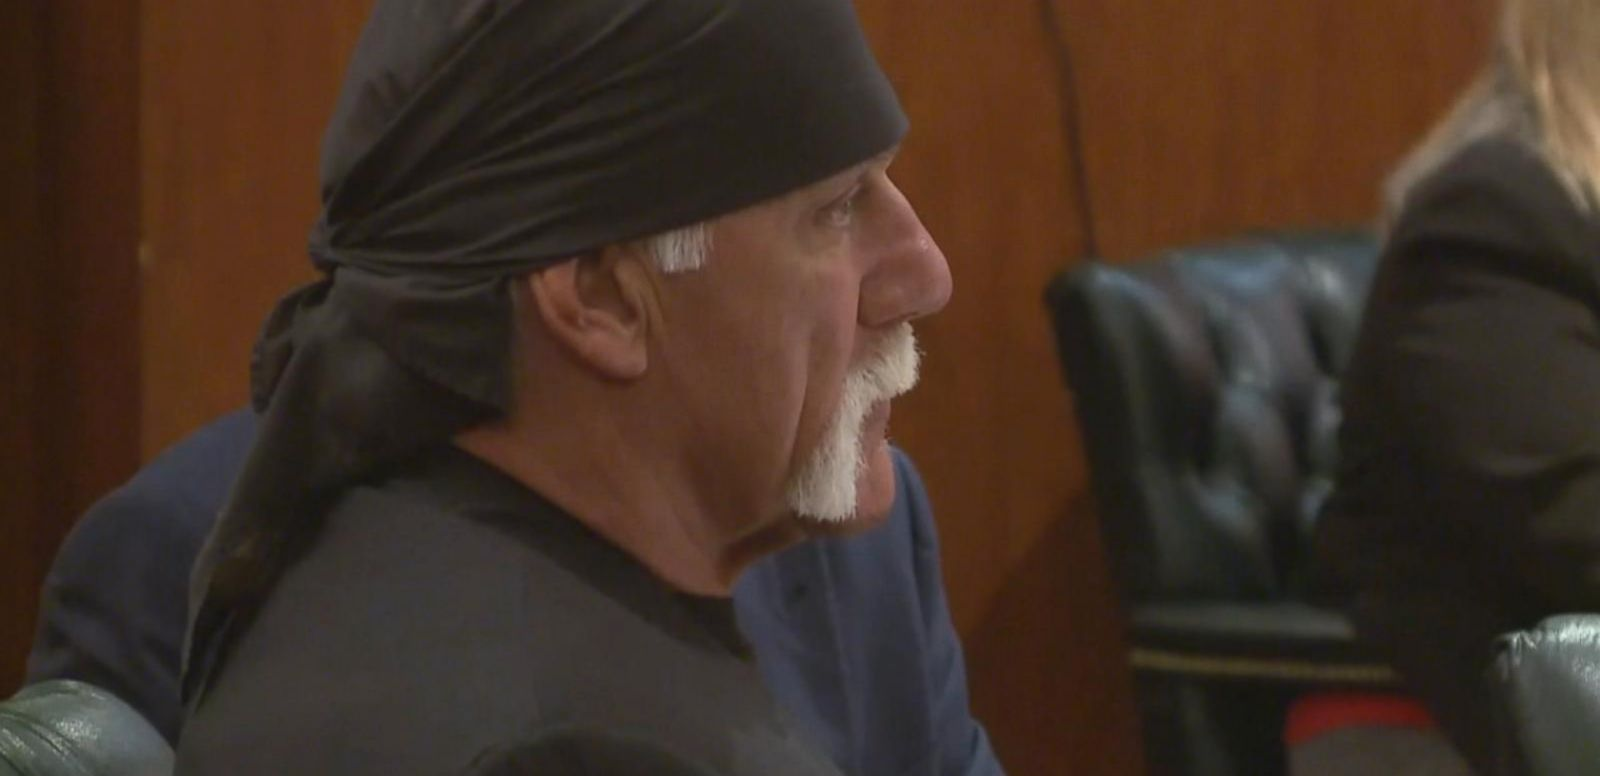 VIDEO: Hulk Hogan and Gawker in $100 Million Legal Battle